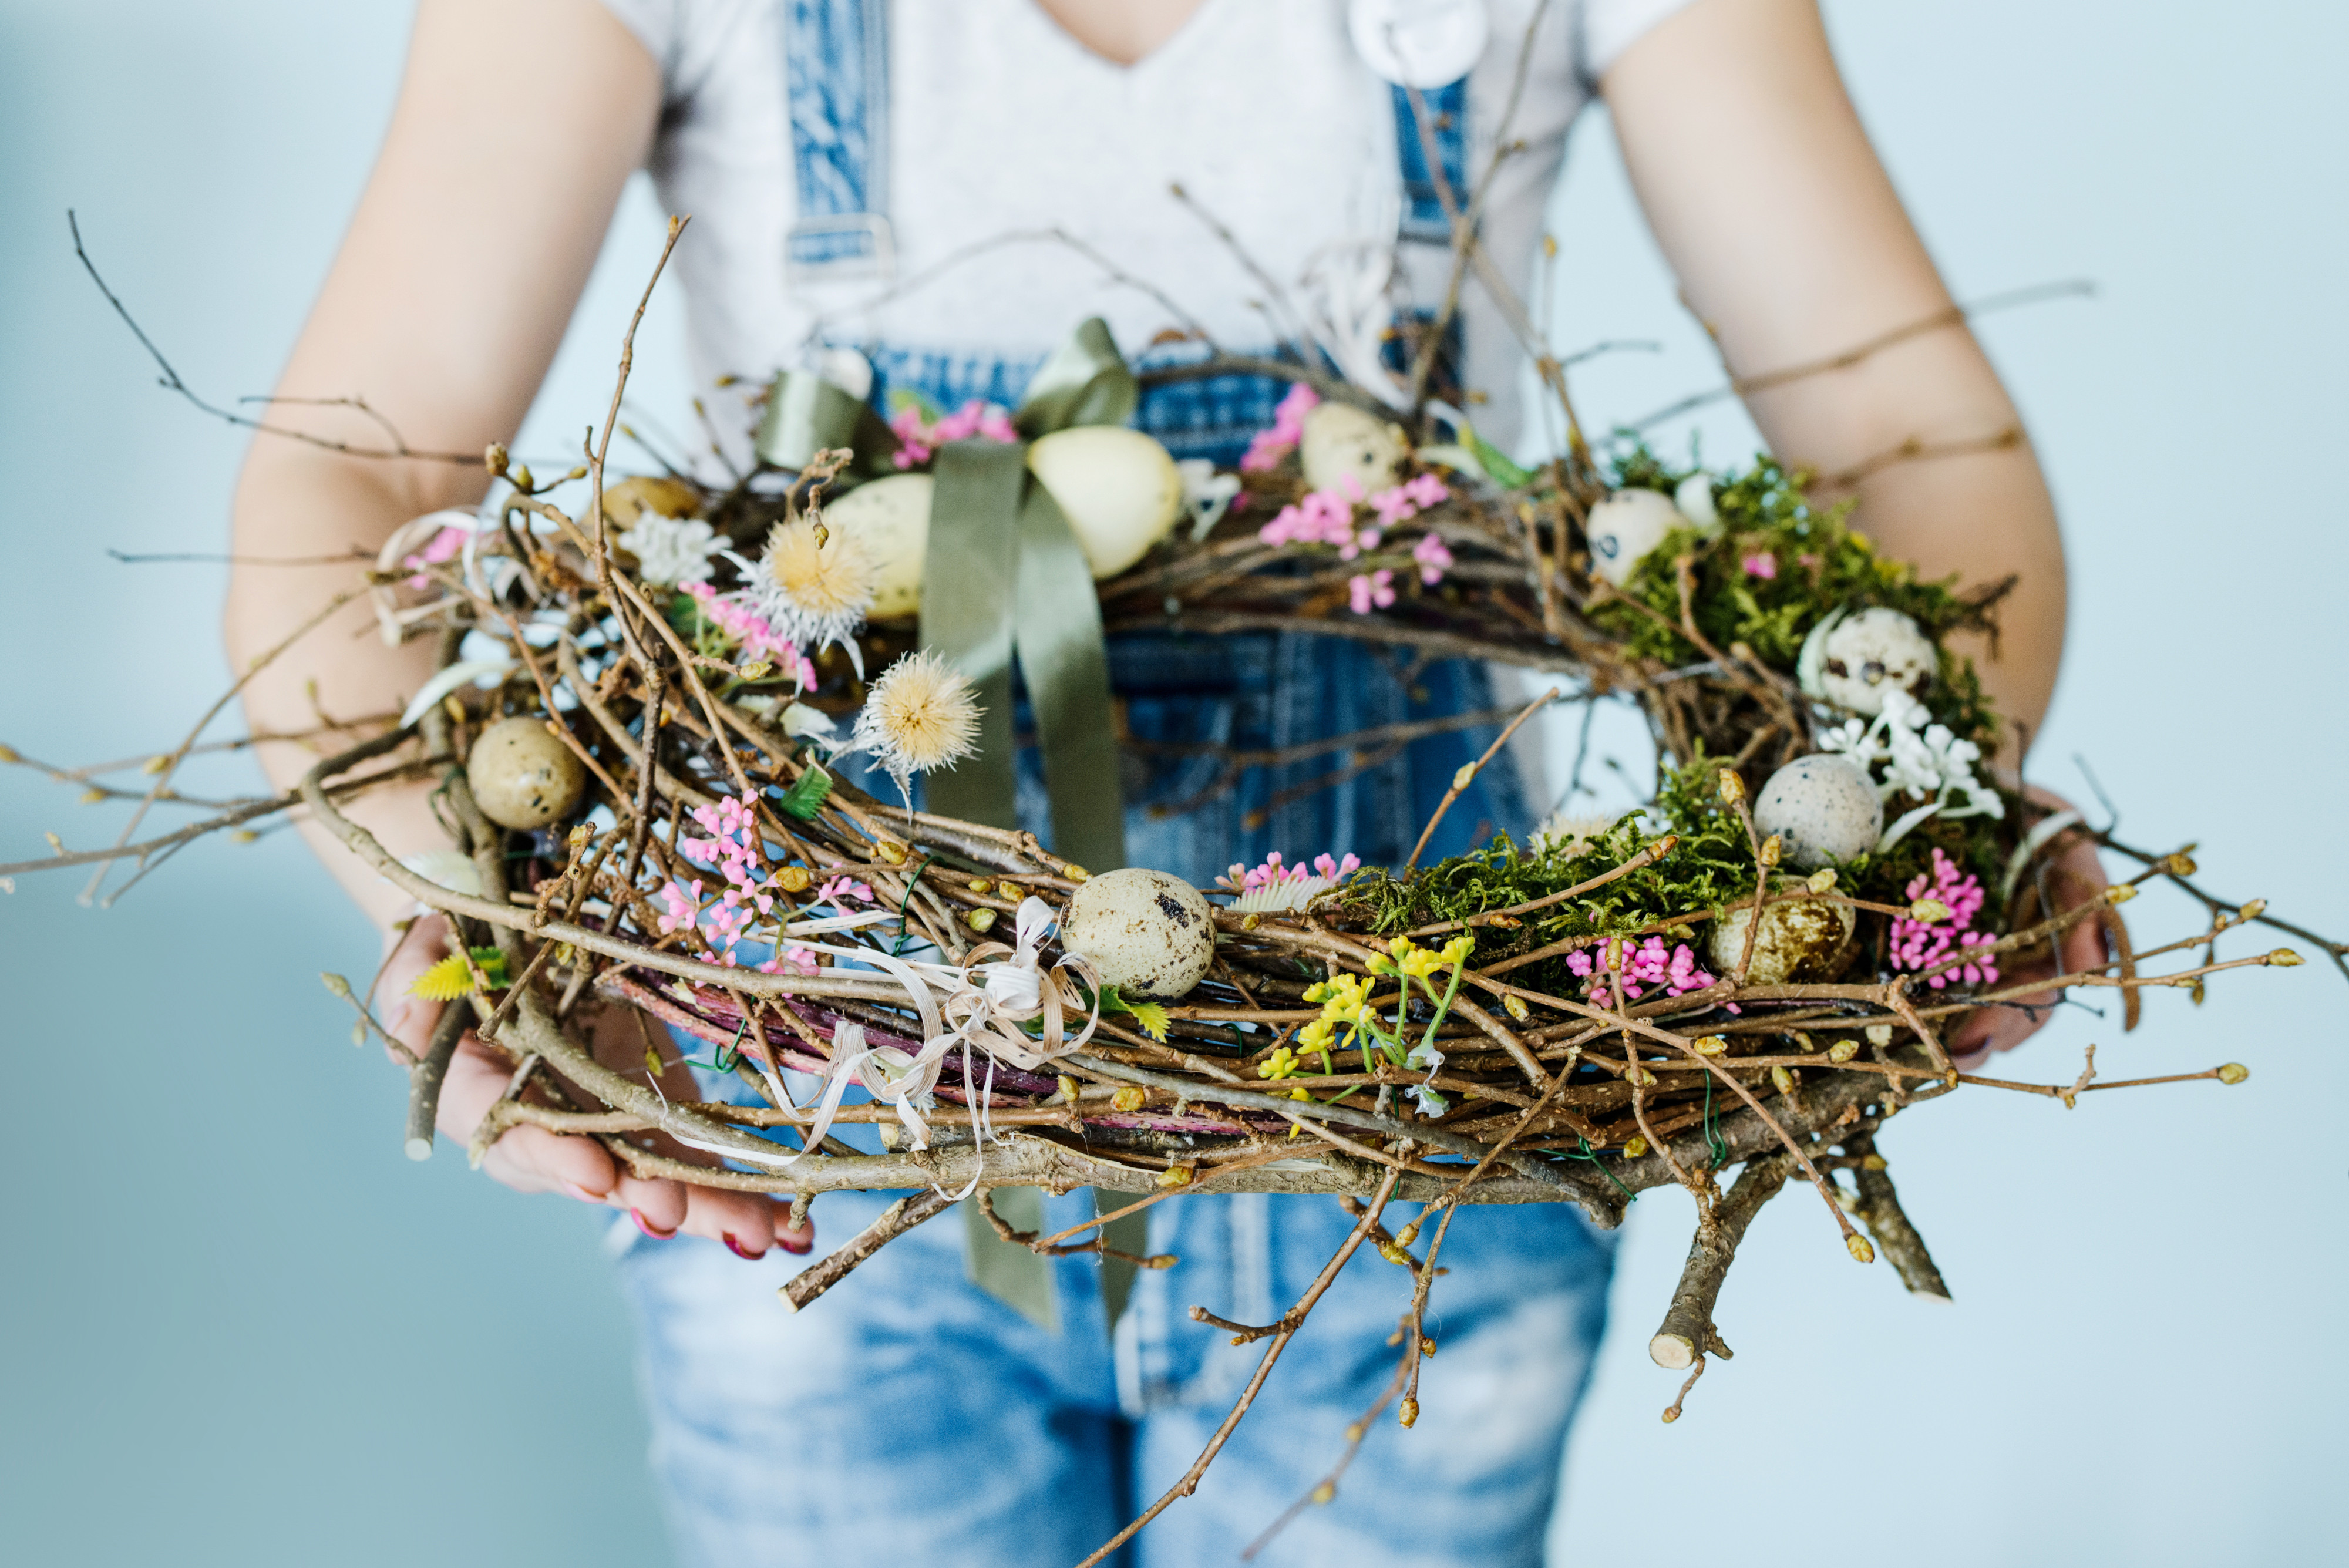 Wreaths are not just for Christmas